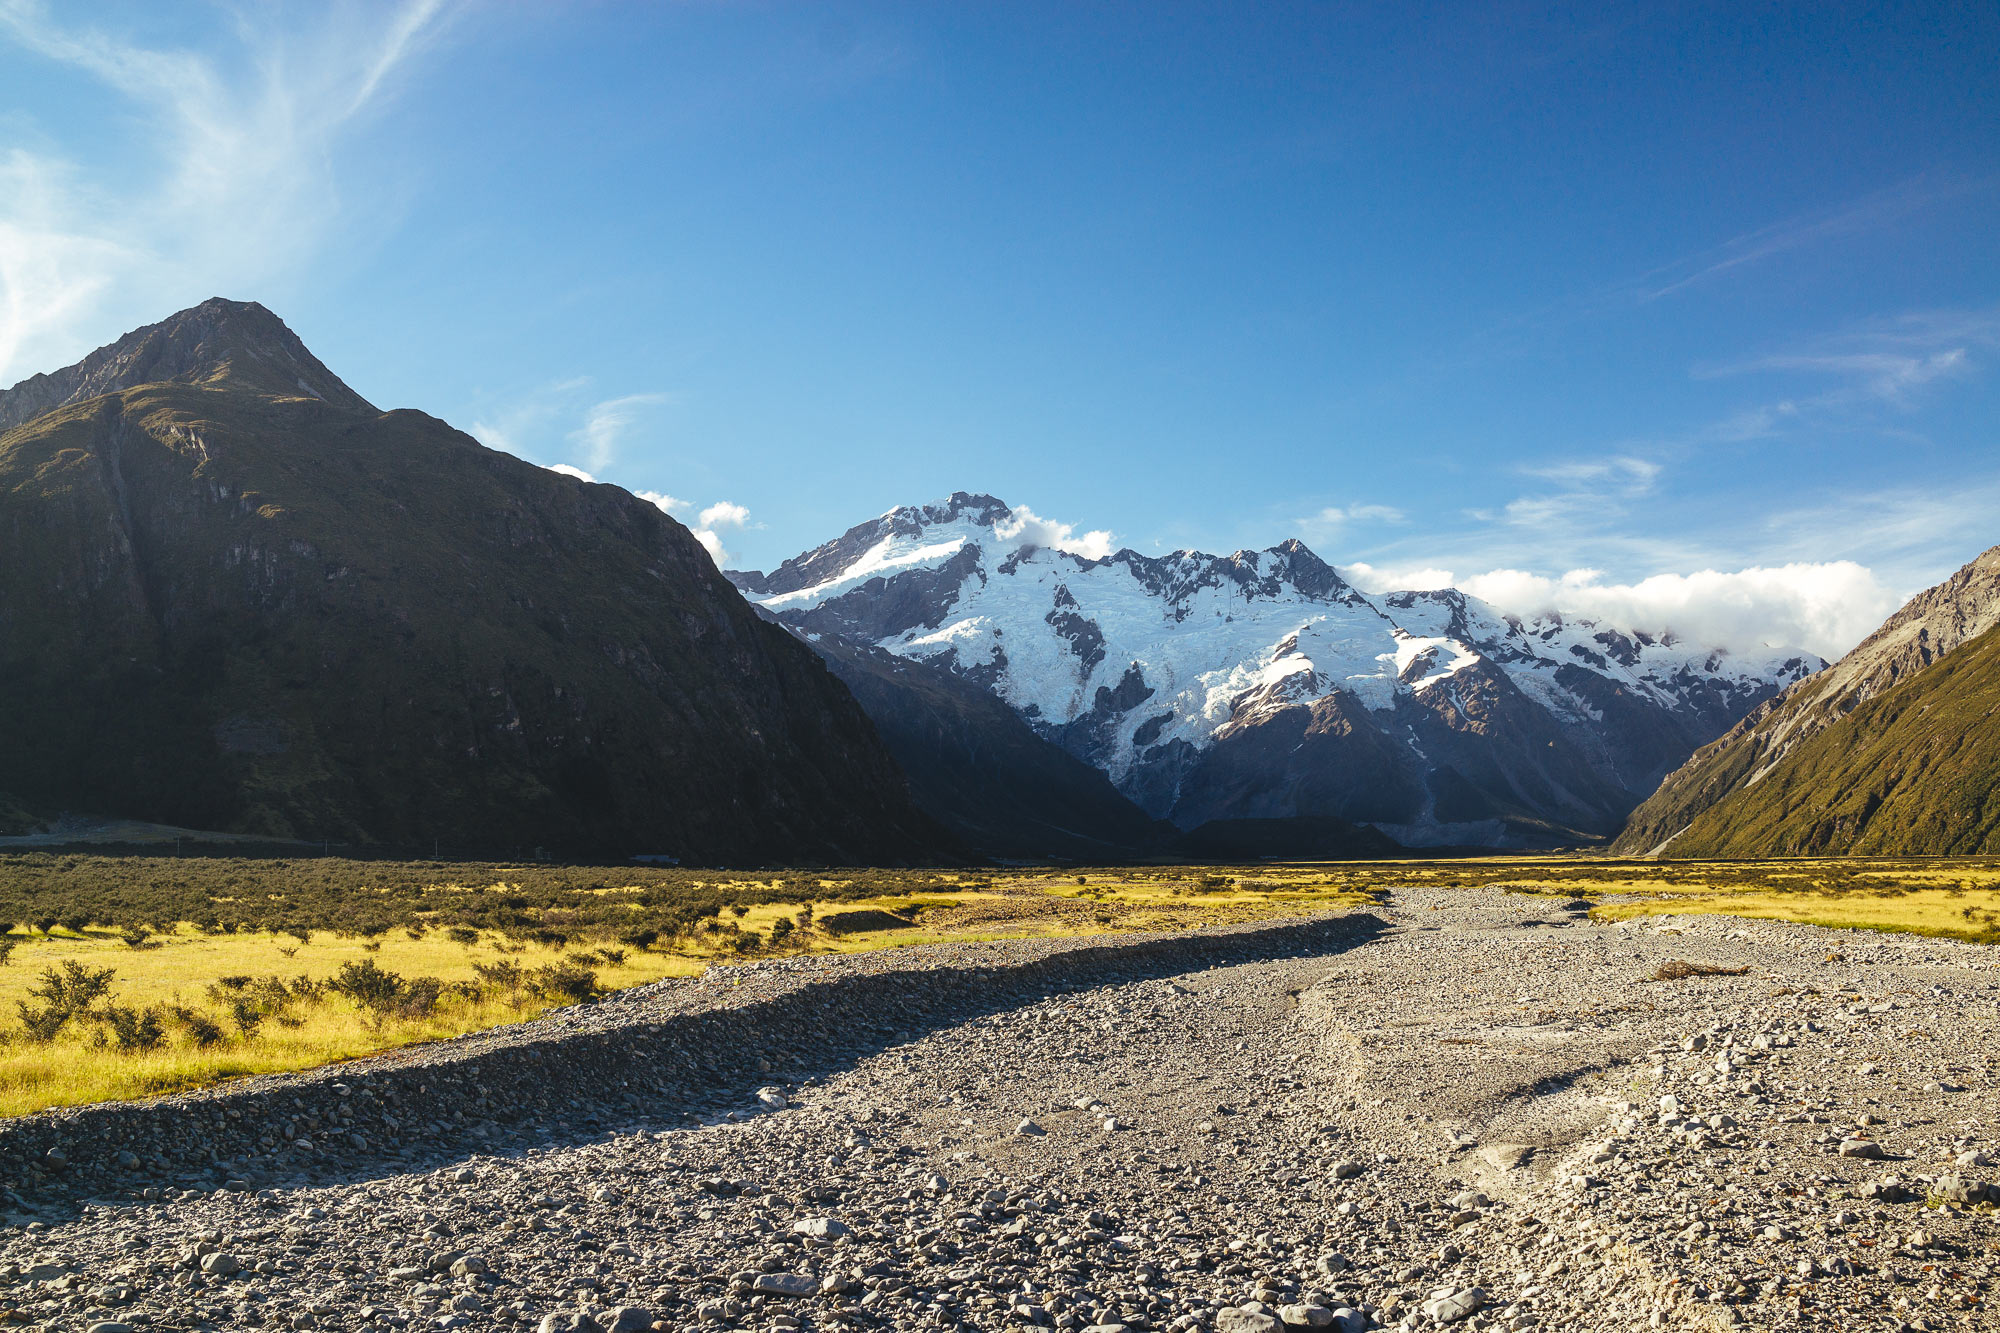 River Bed at Mt Cook National Park, NZ